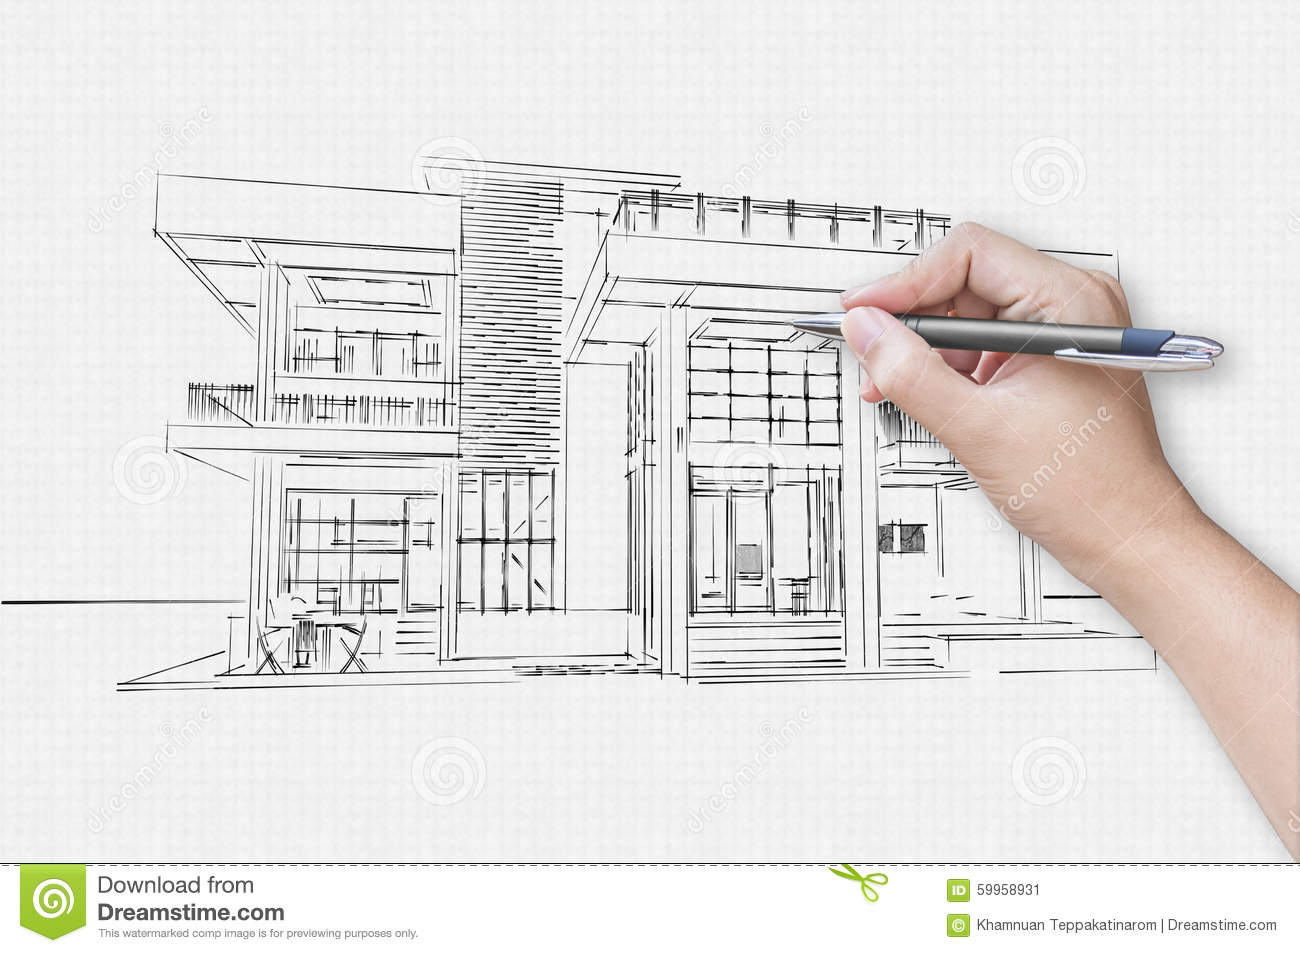 rchitect Hand Drawing House Stock Photo - Image: 59958931 - ^